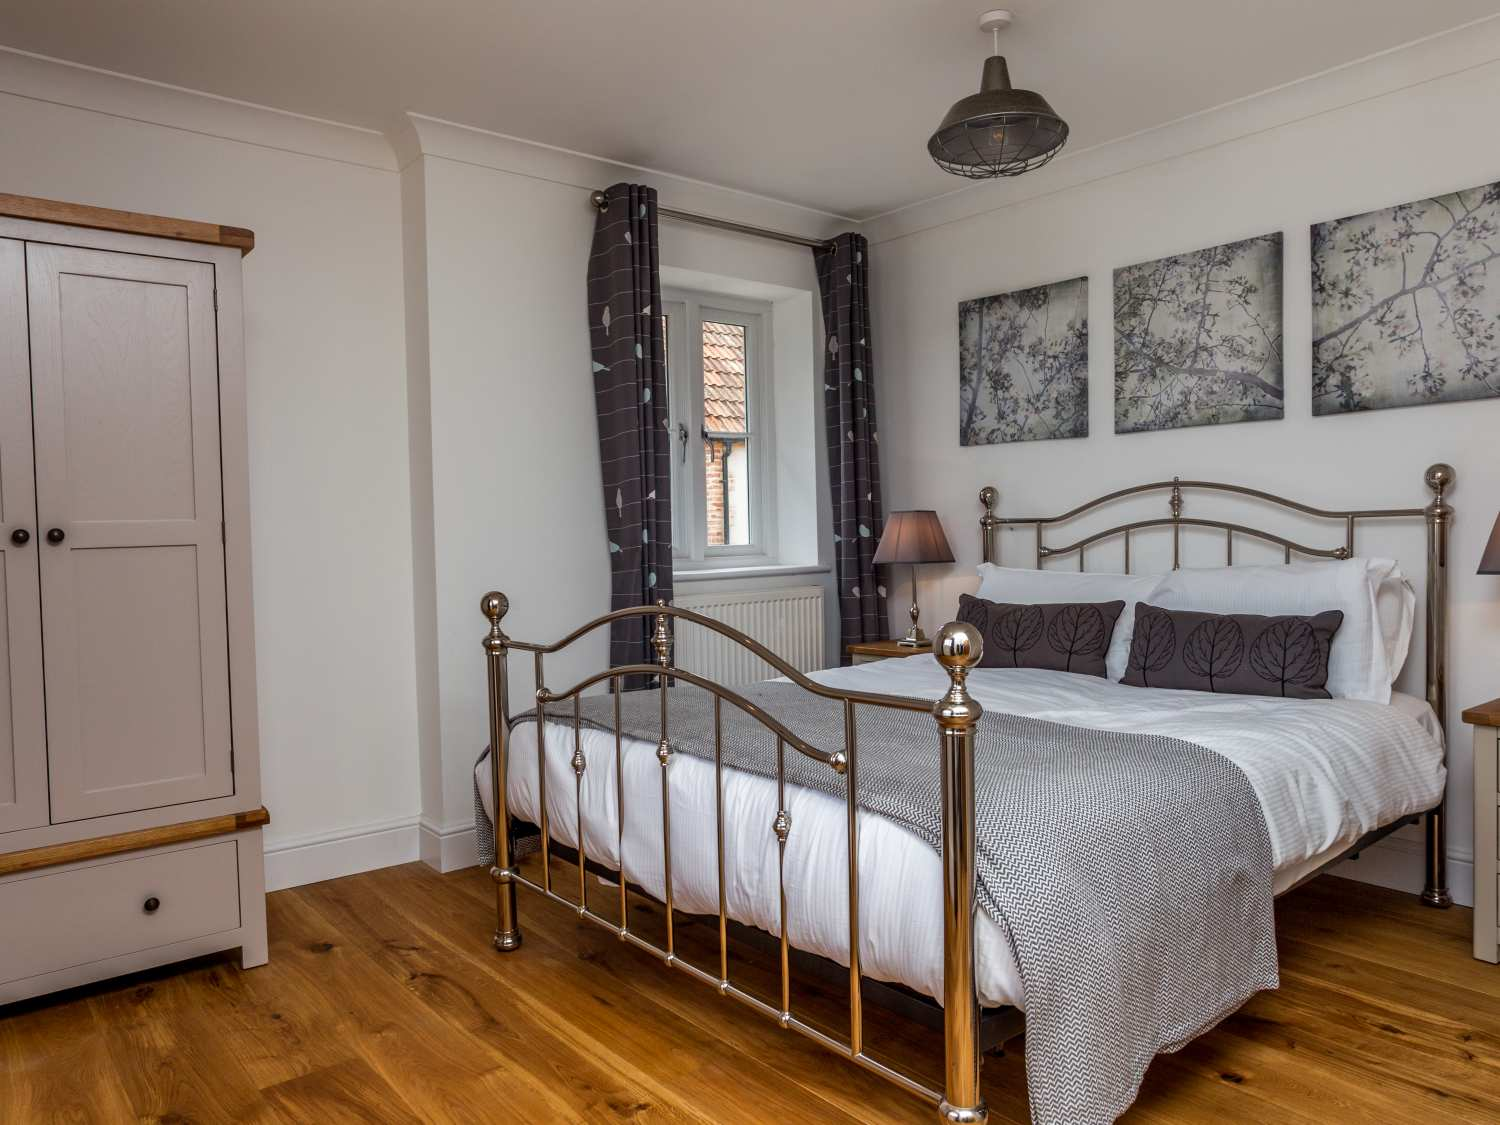 The Farm House Holiday Cottage Upper Seagry20